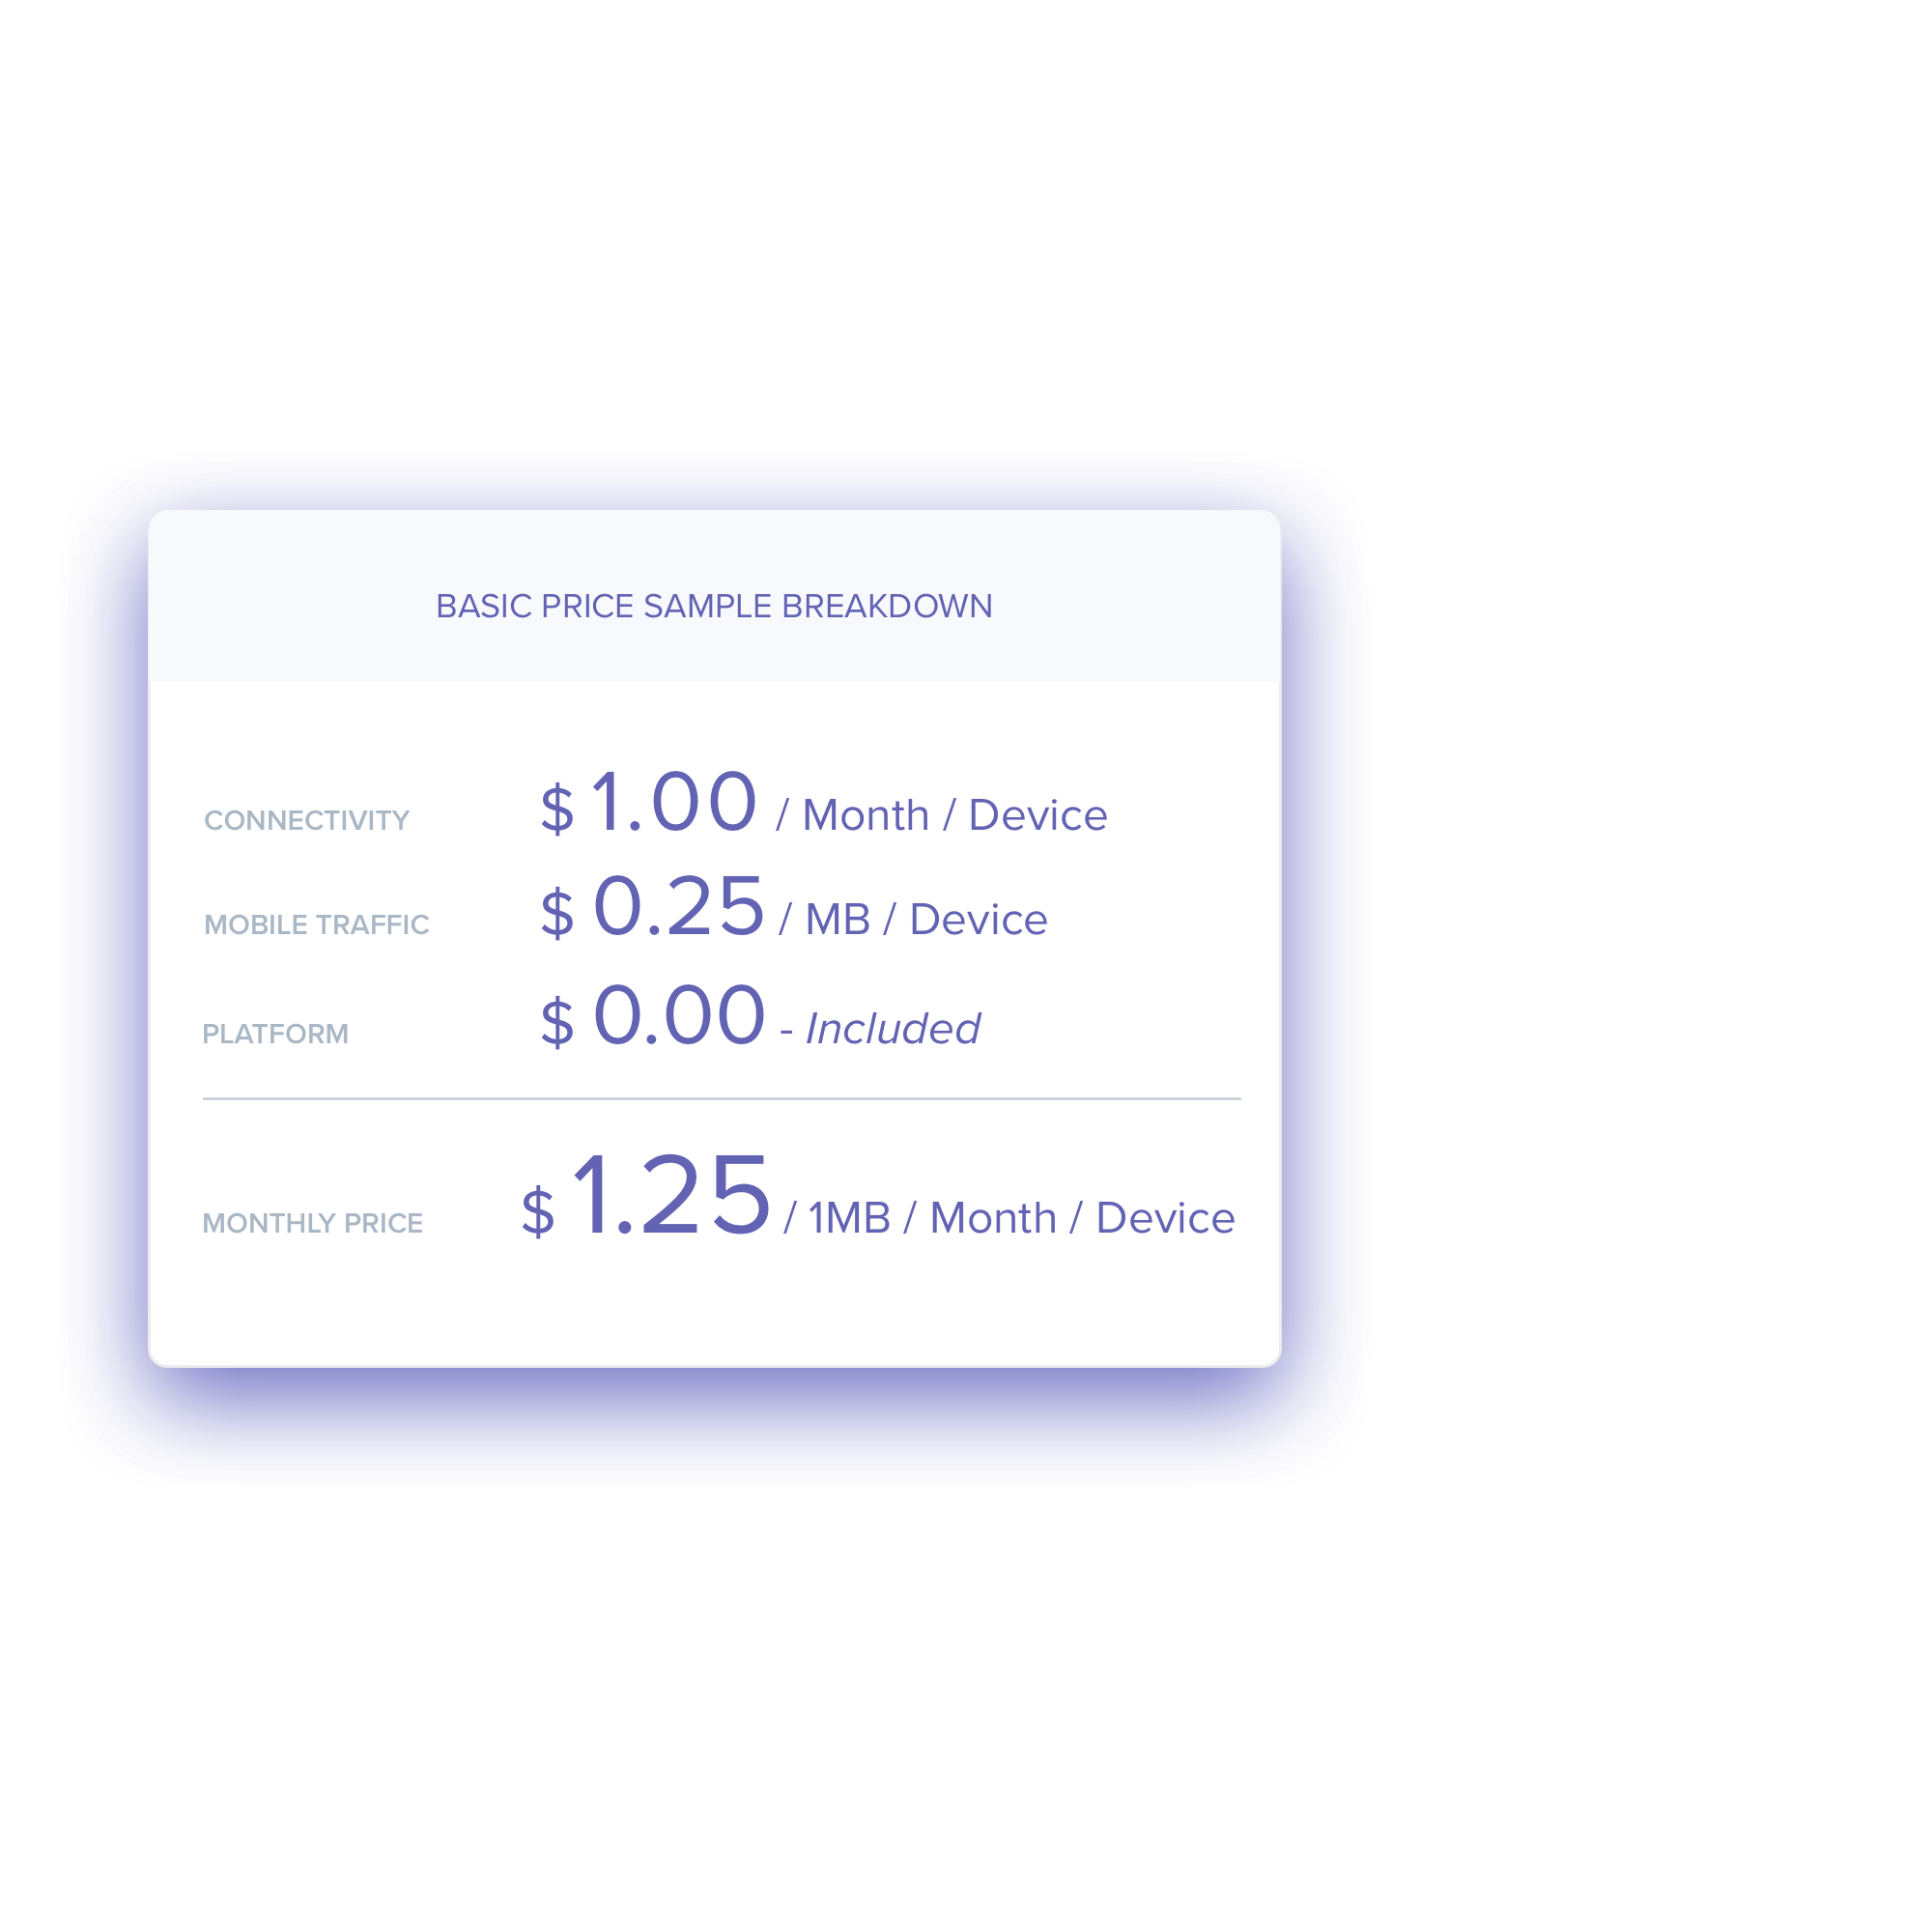 Price sample - As a rule of thumb, our prices are:✔Connectivity $1.00 / month / device✔Data on mobile network $0.25 / MB✔Prices valid for Standard Price Zone✔ Platform cost includedThese prices are valid in standard price countries outside of Europe and based on small volumes.For higher volume orders, the pricing will reduce.We always offer competitive pricing!